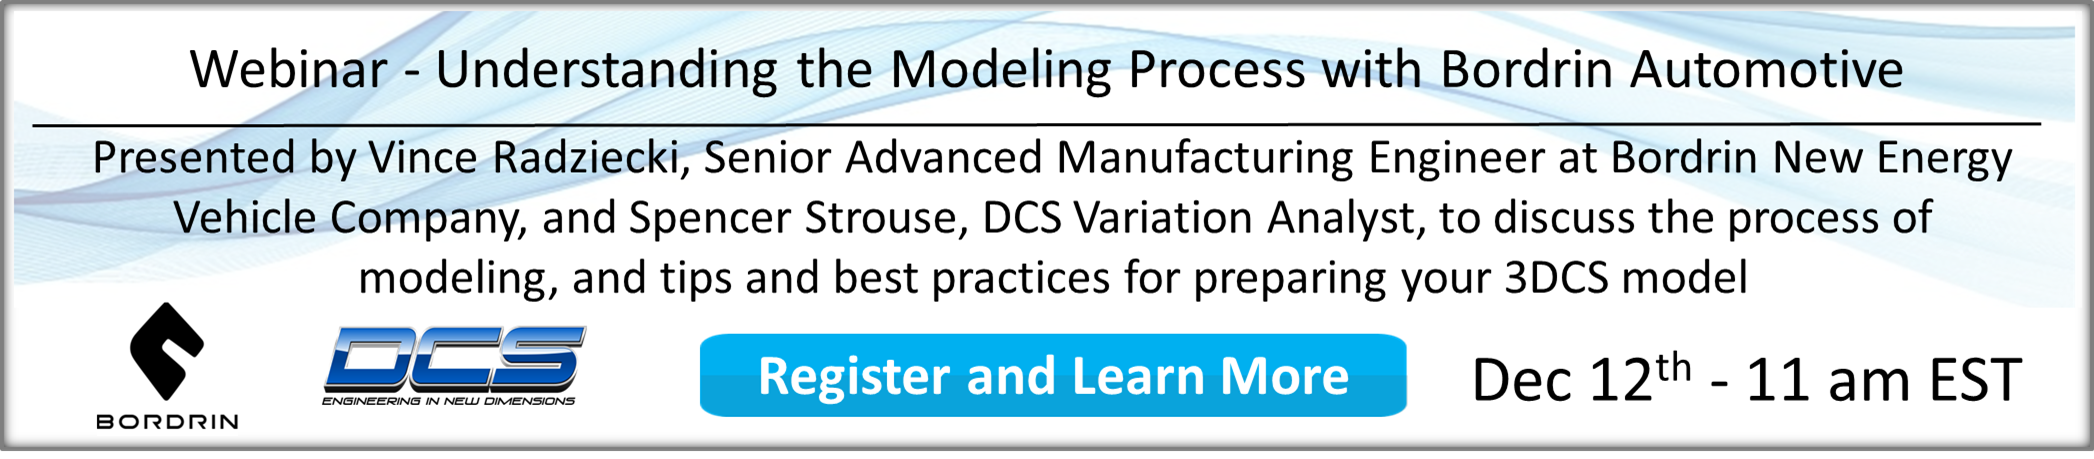 Webinar - The Modeling Process - Methods and Tips on Preparing and Creating 3DCS Models with Guest Bordrin